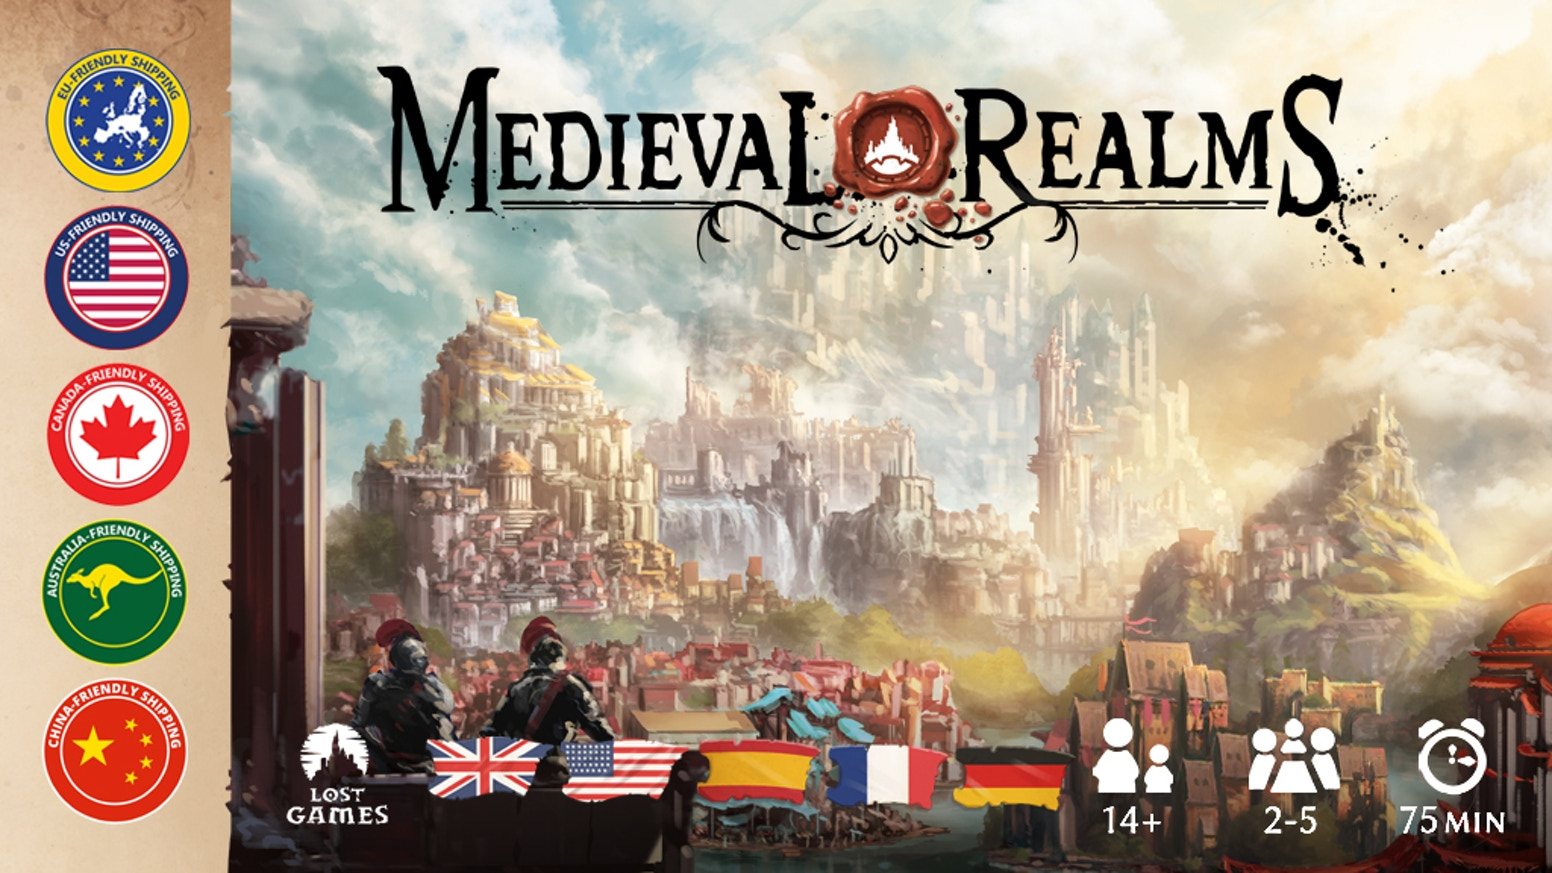 Medieval Realms is a strategic boardgame for 2-5 players, 75min duration.